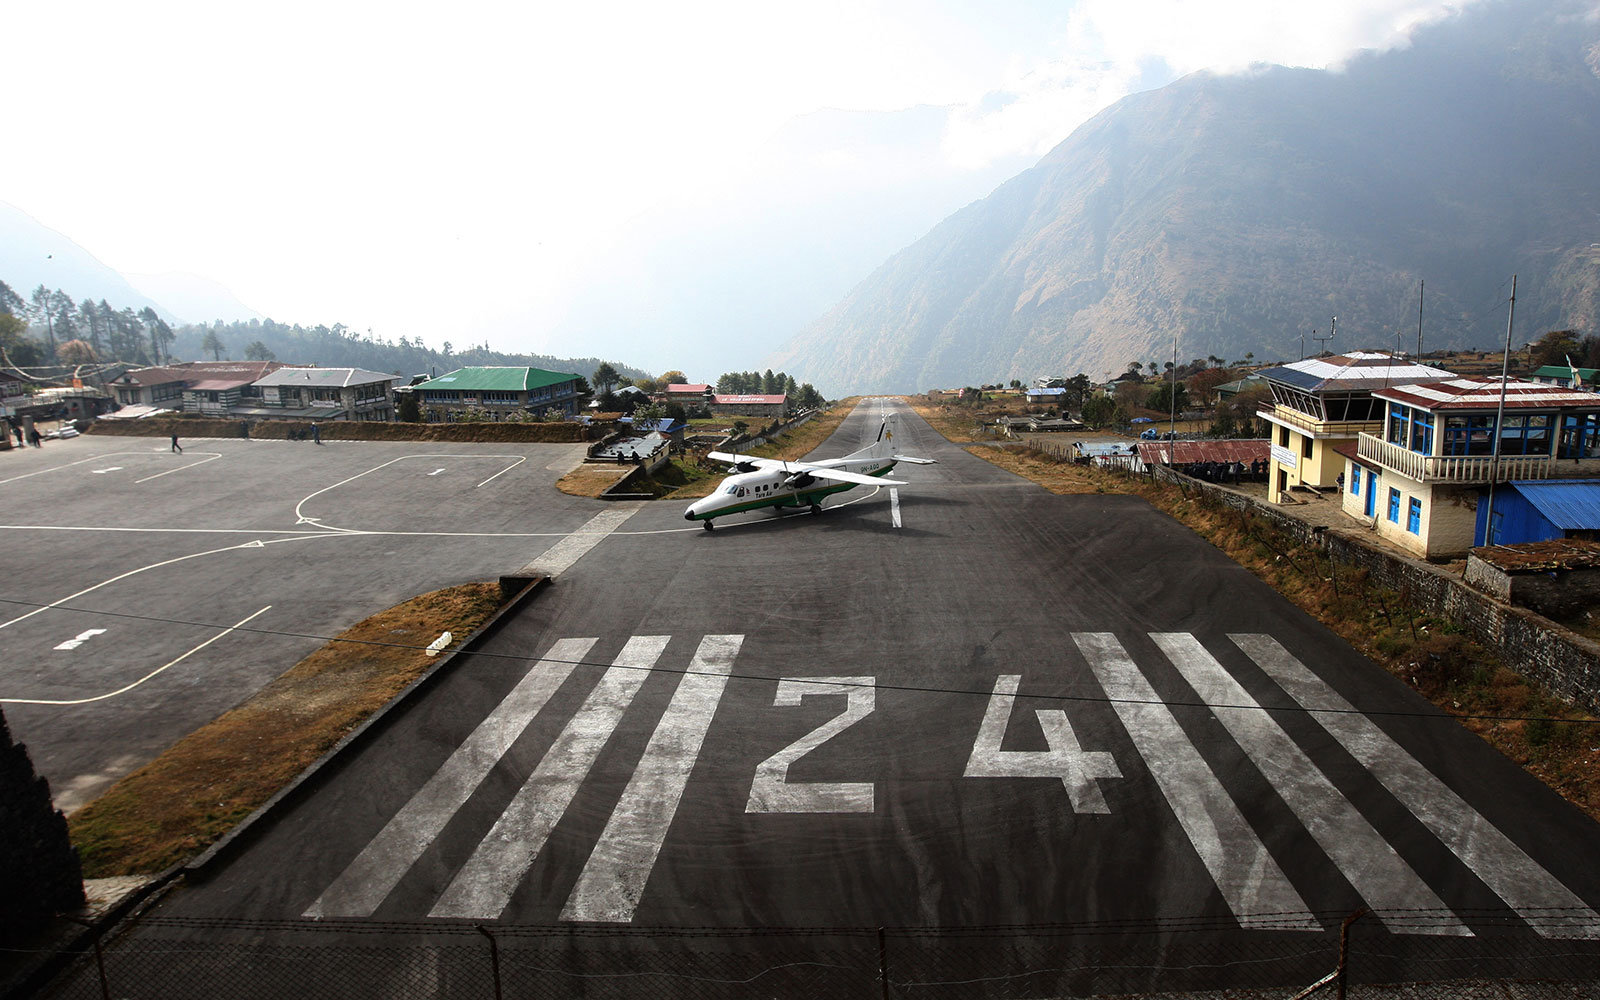 Is This the Scariest Airport in the World?